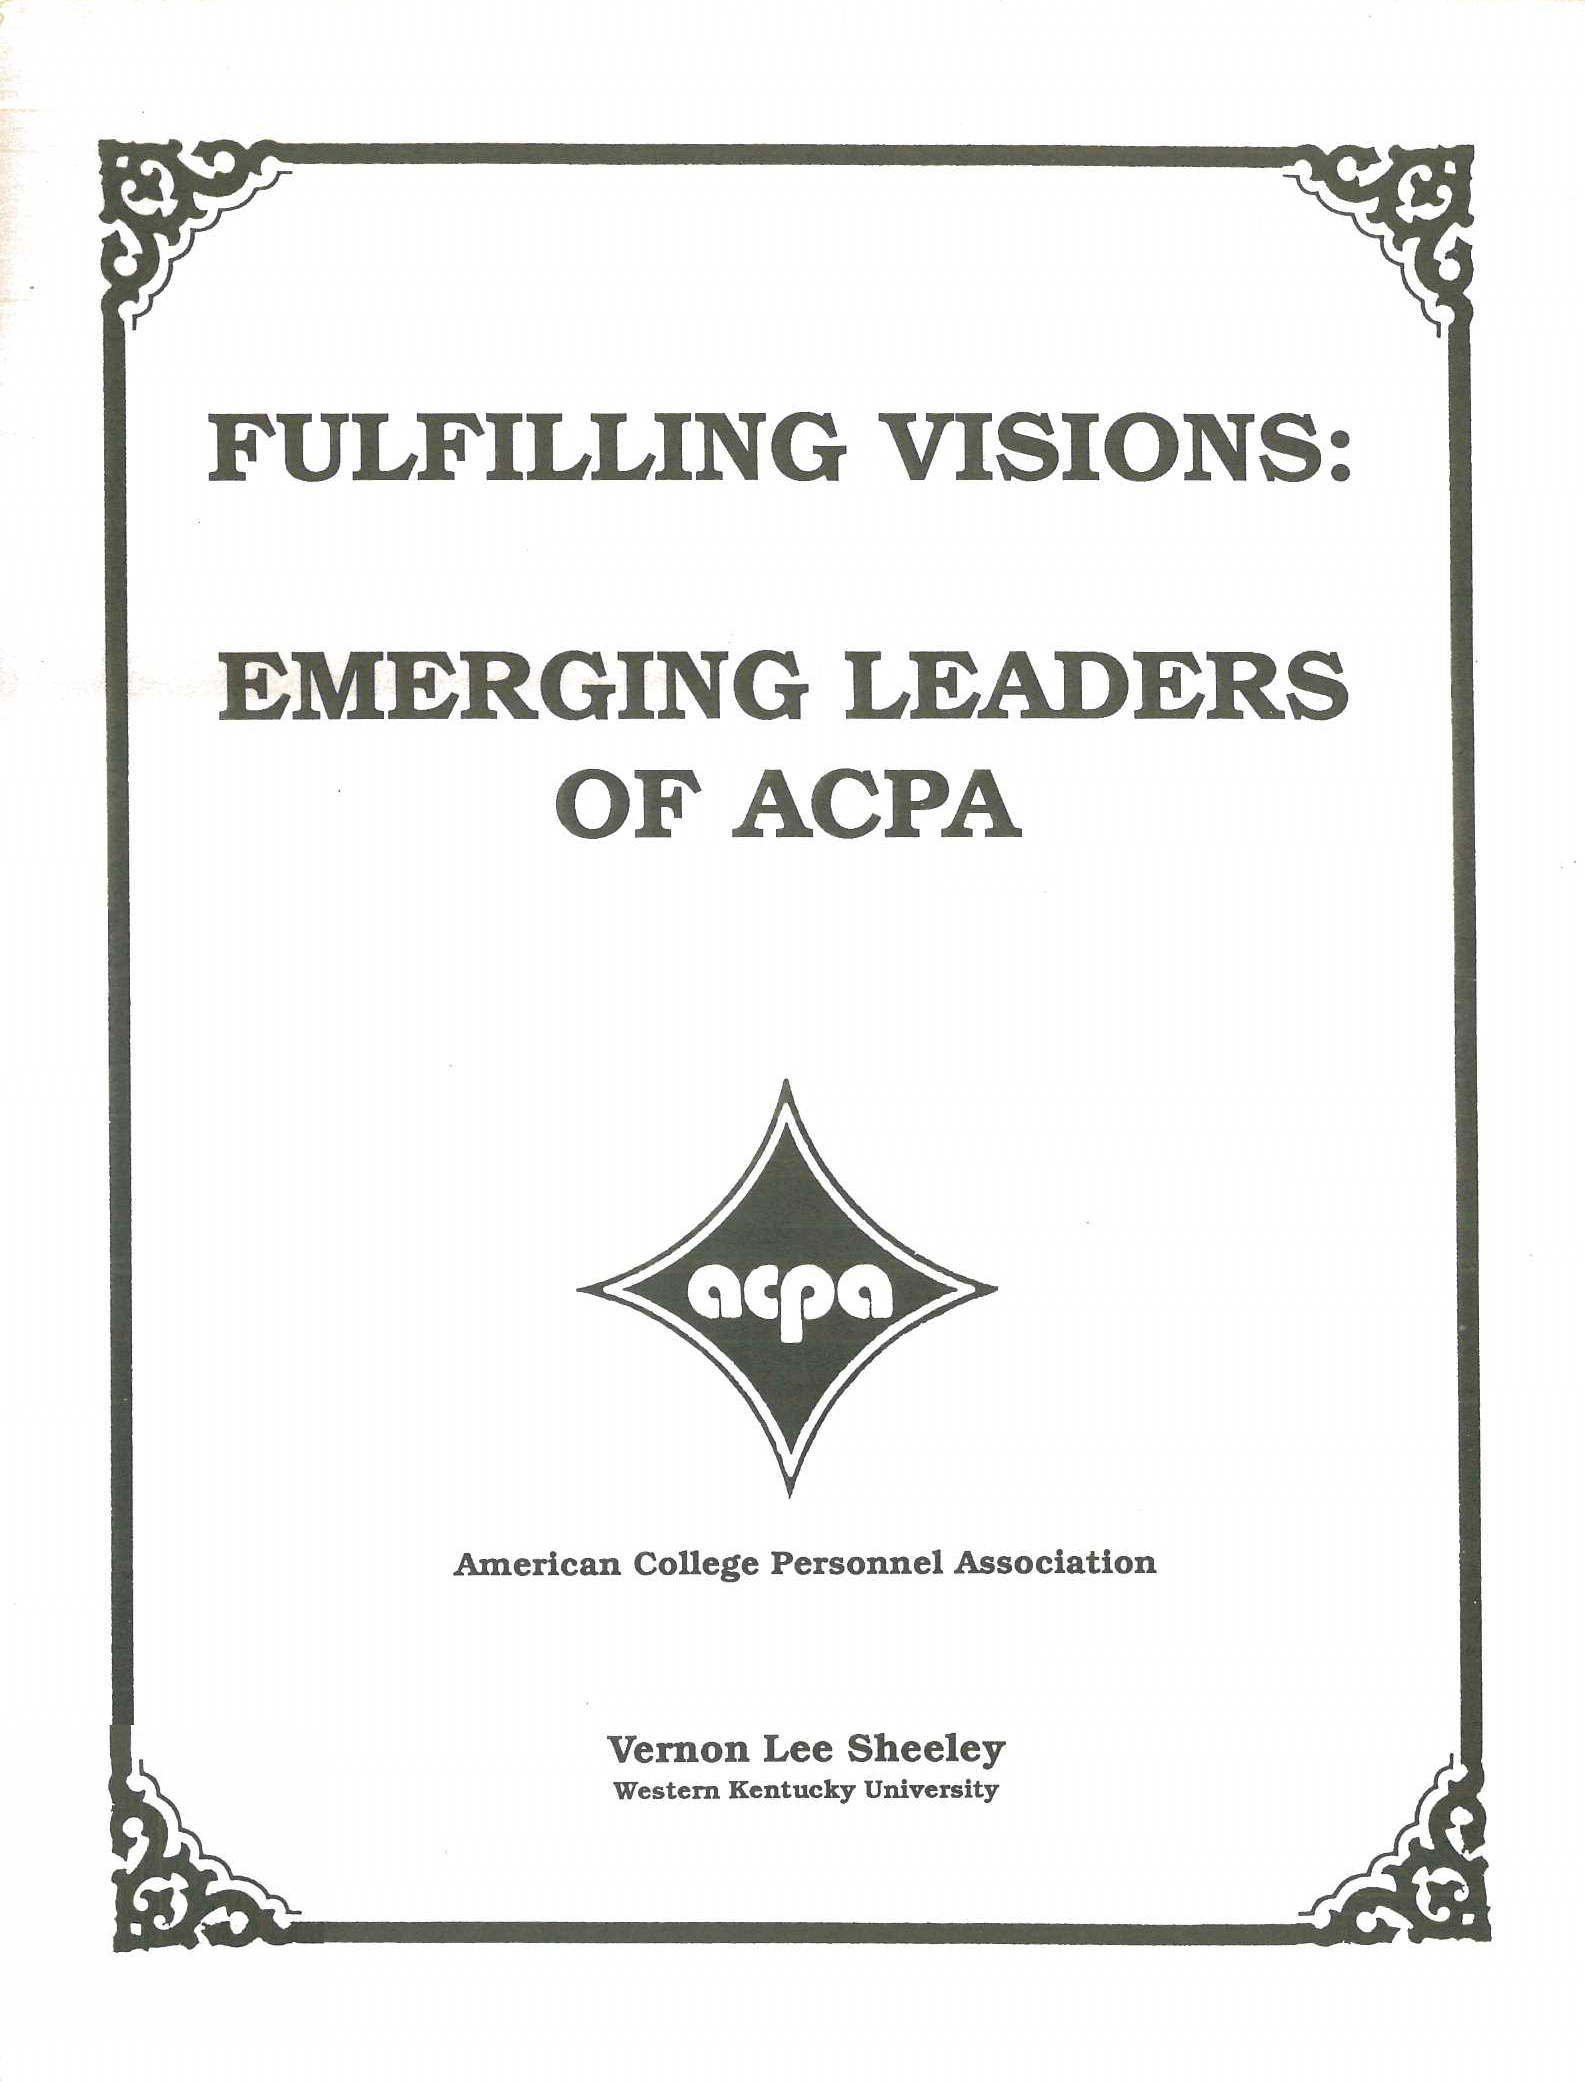 Fulfilling Visions: Emerging Leaders of ACPA